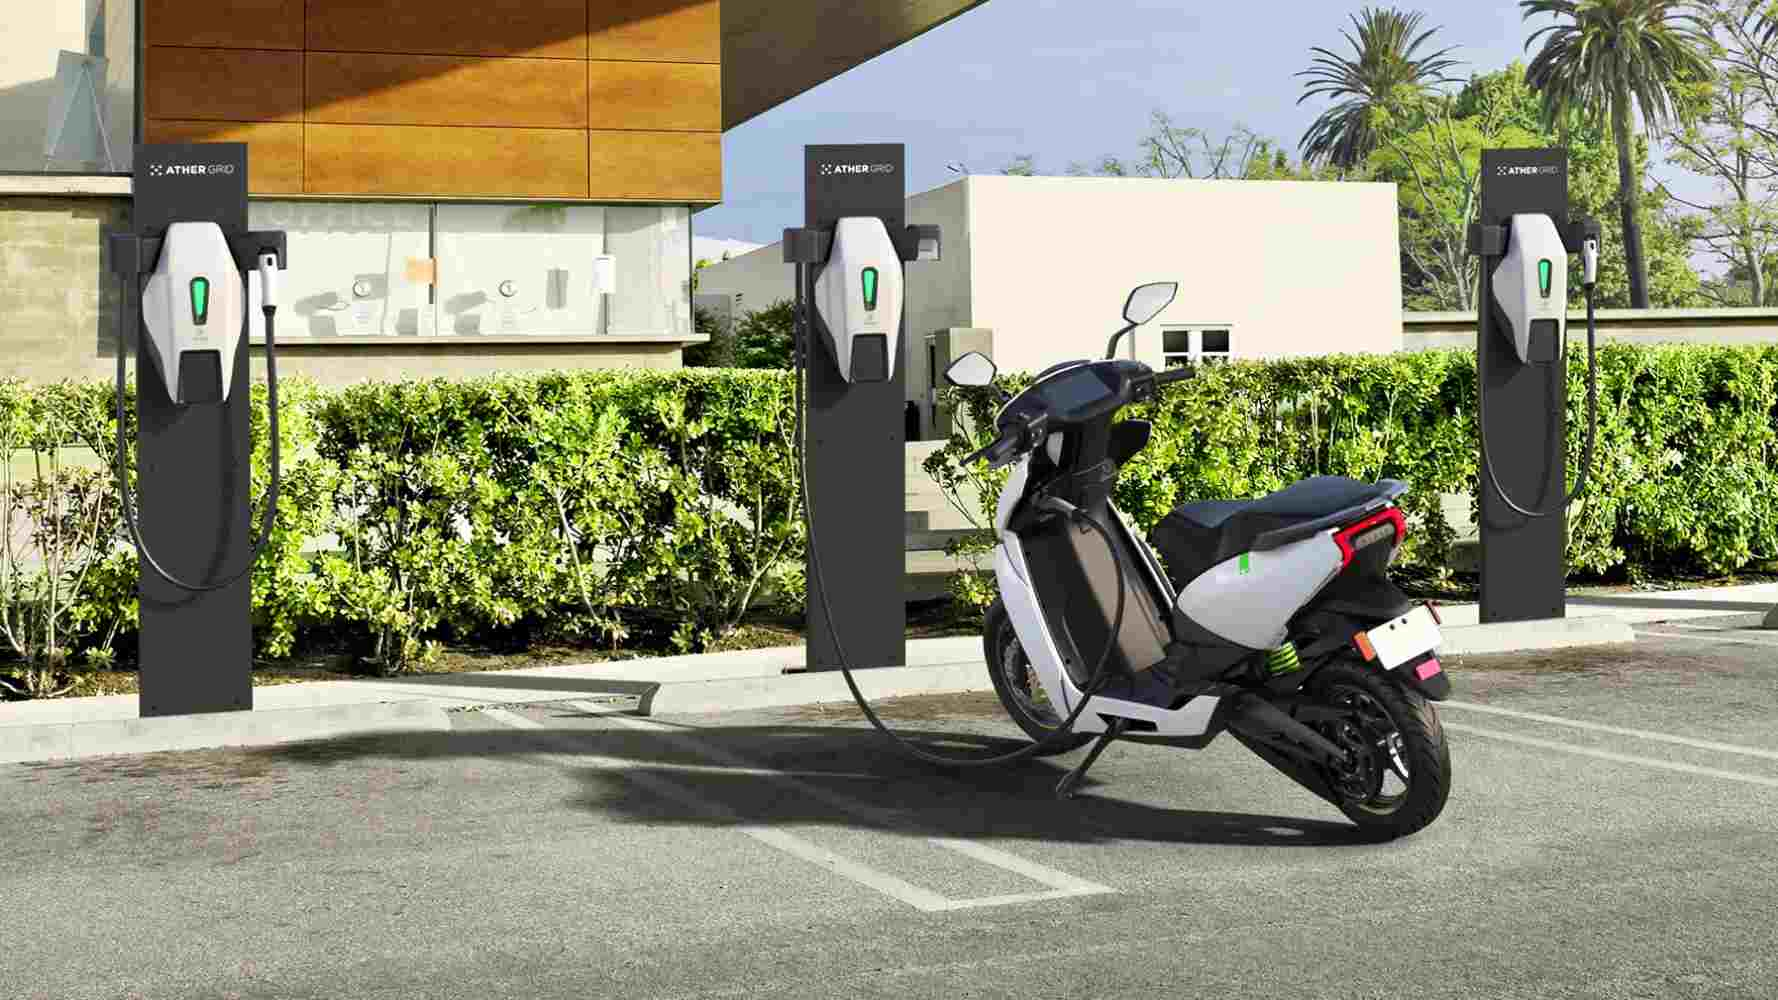 Ather will assist other manufacturers in integrating the fast-charging connector into their platforms. Image: Ather Energy